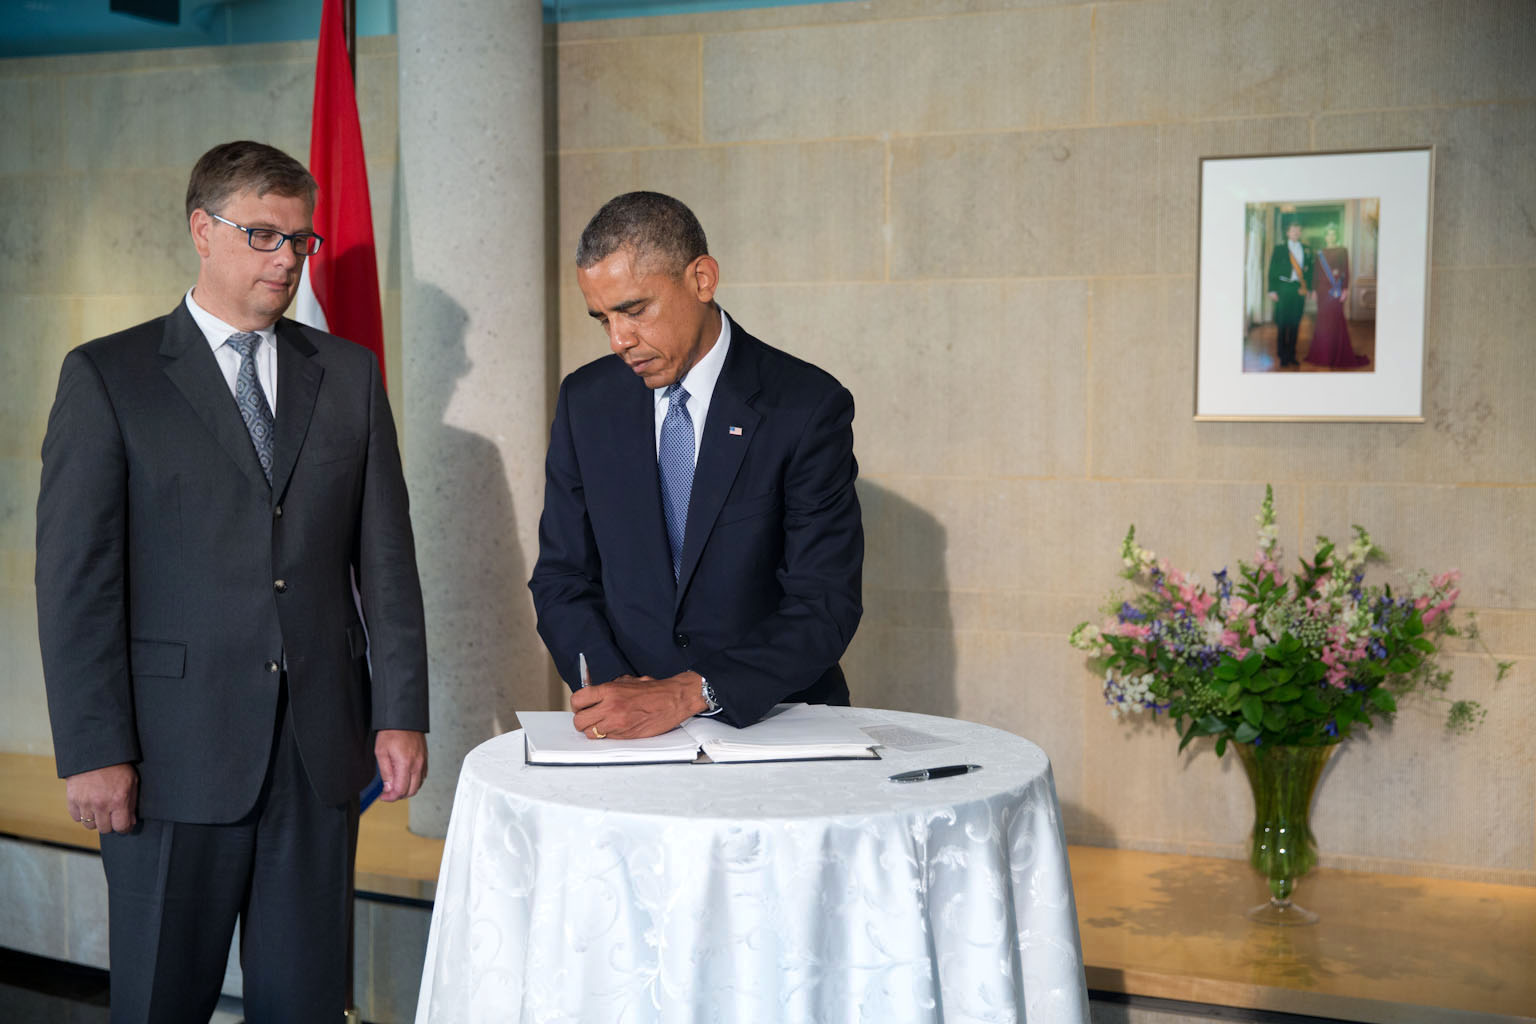 President Barack Obama visits the Embassy of the Netherlands